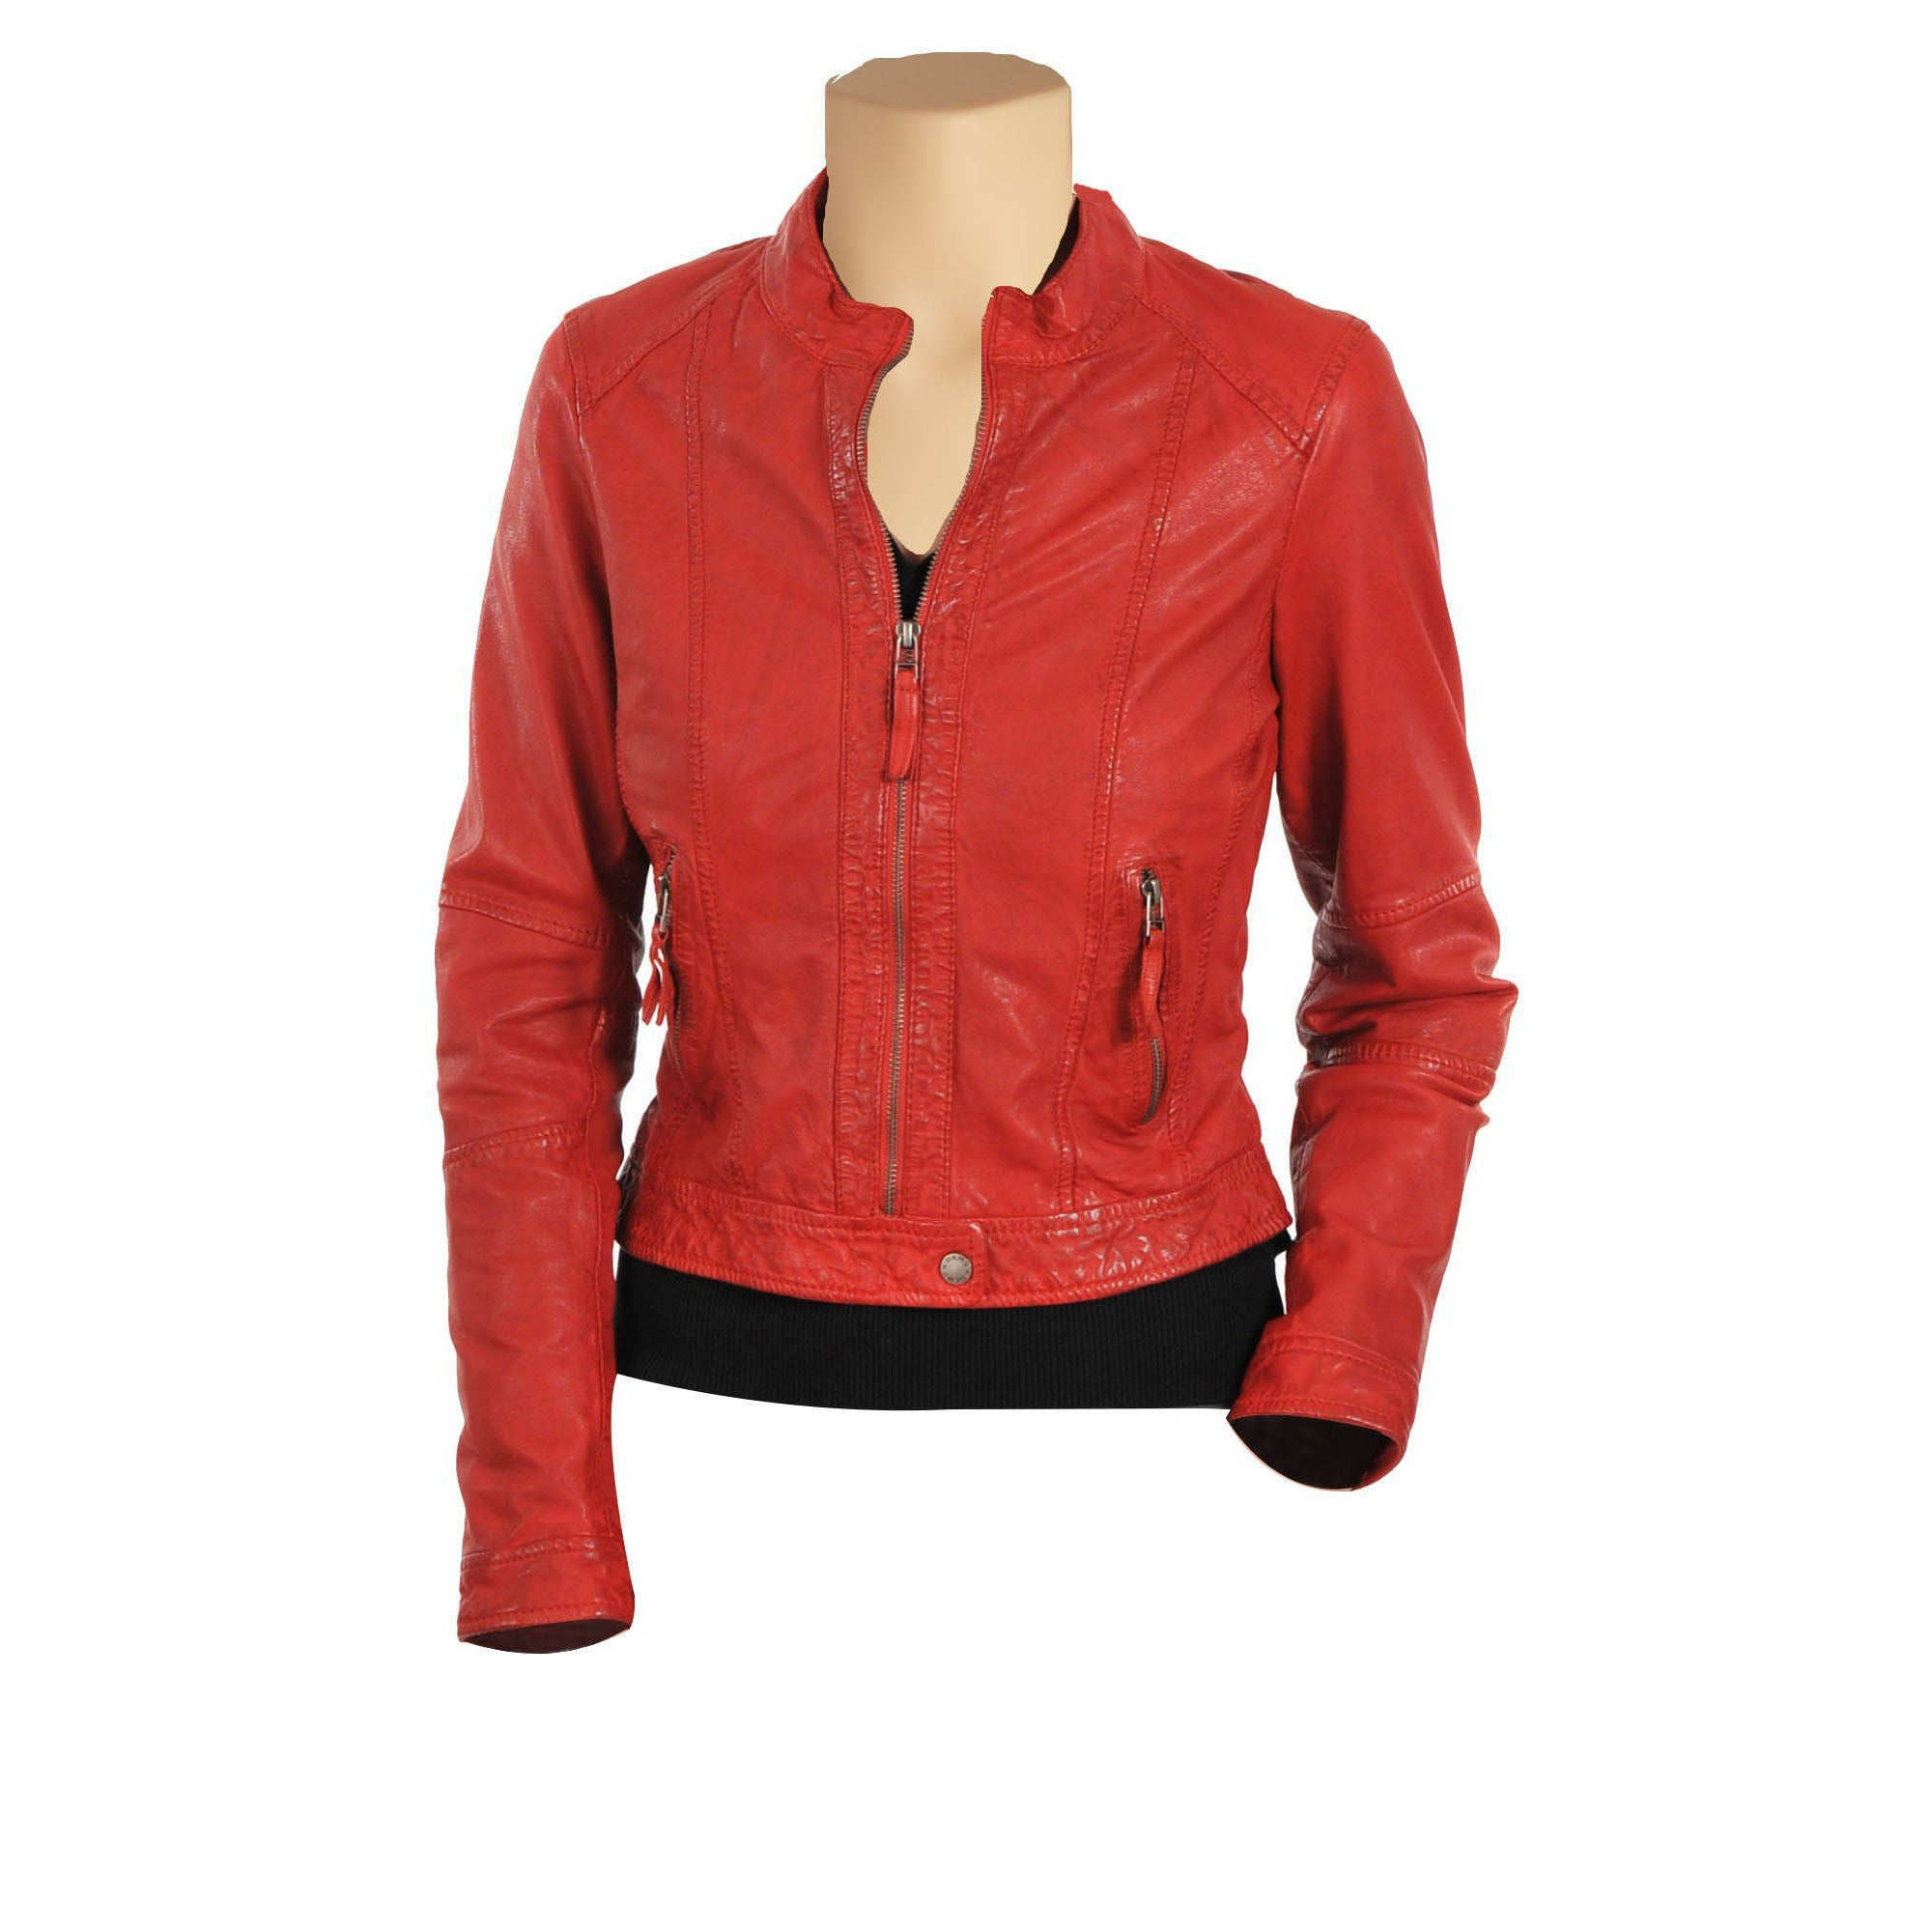 Women's Red moto style leather jacket - Lusso Leather - 1